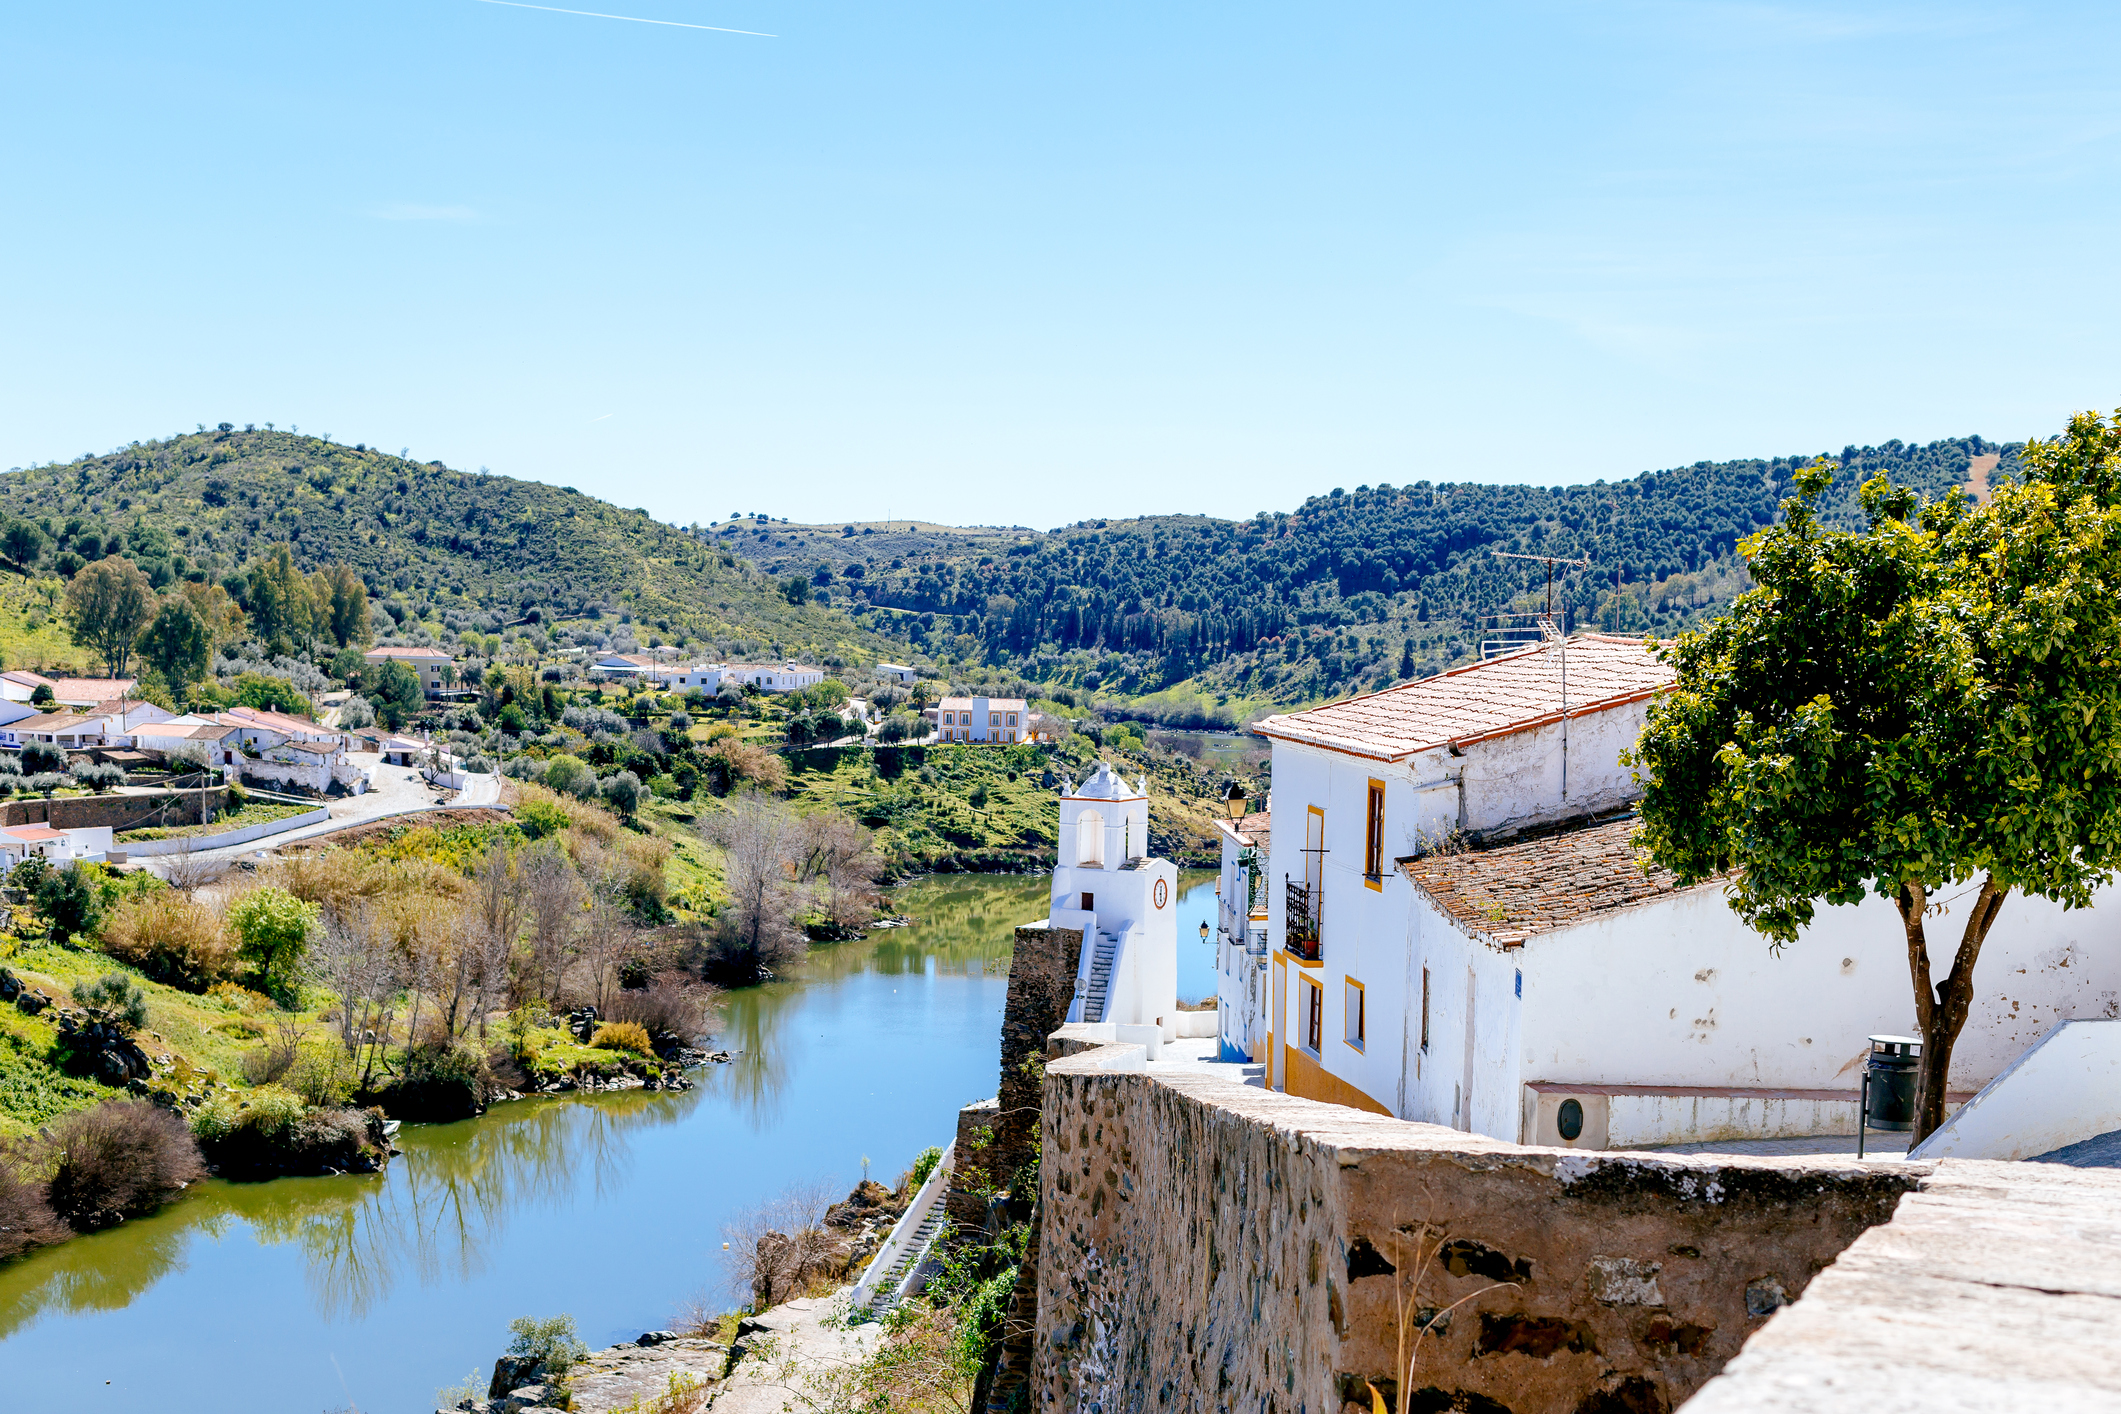 View of Mertola Town and the Guadiana River, Portugal.